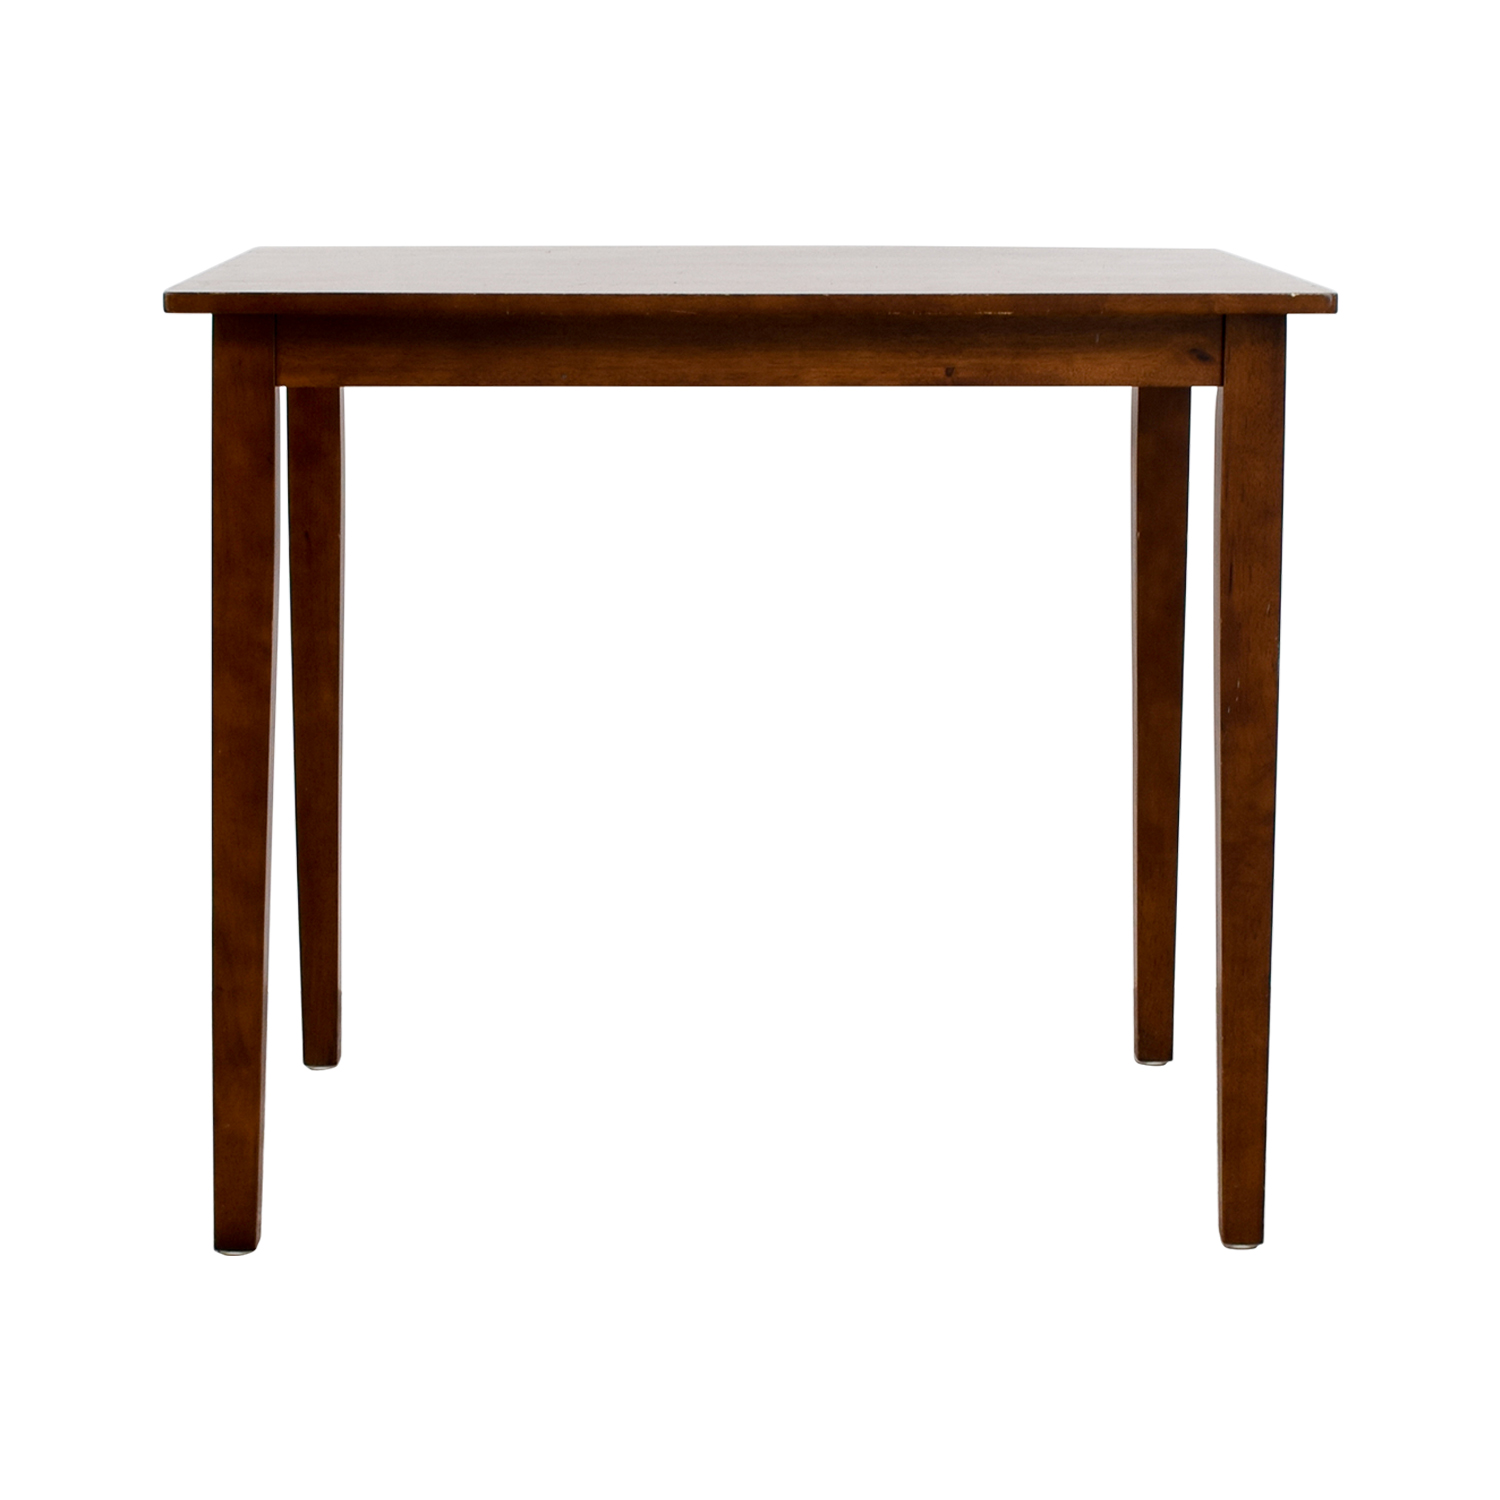 City Furniture City Furniture Pub Table second hand